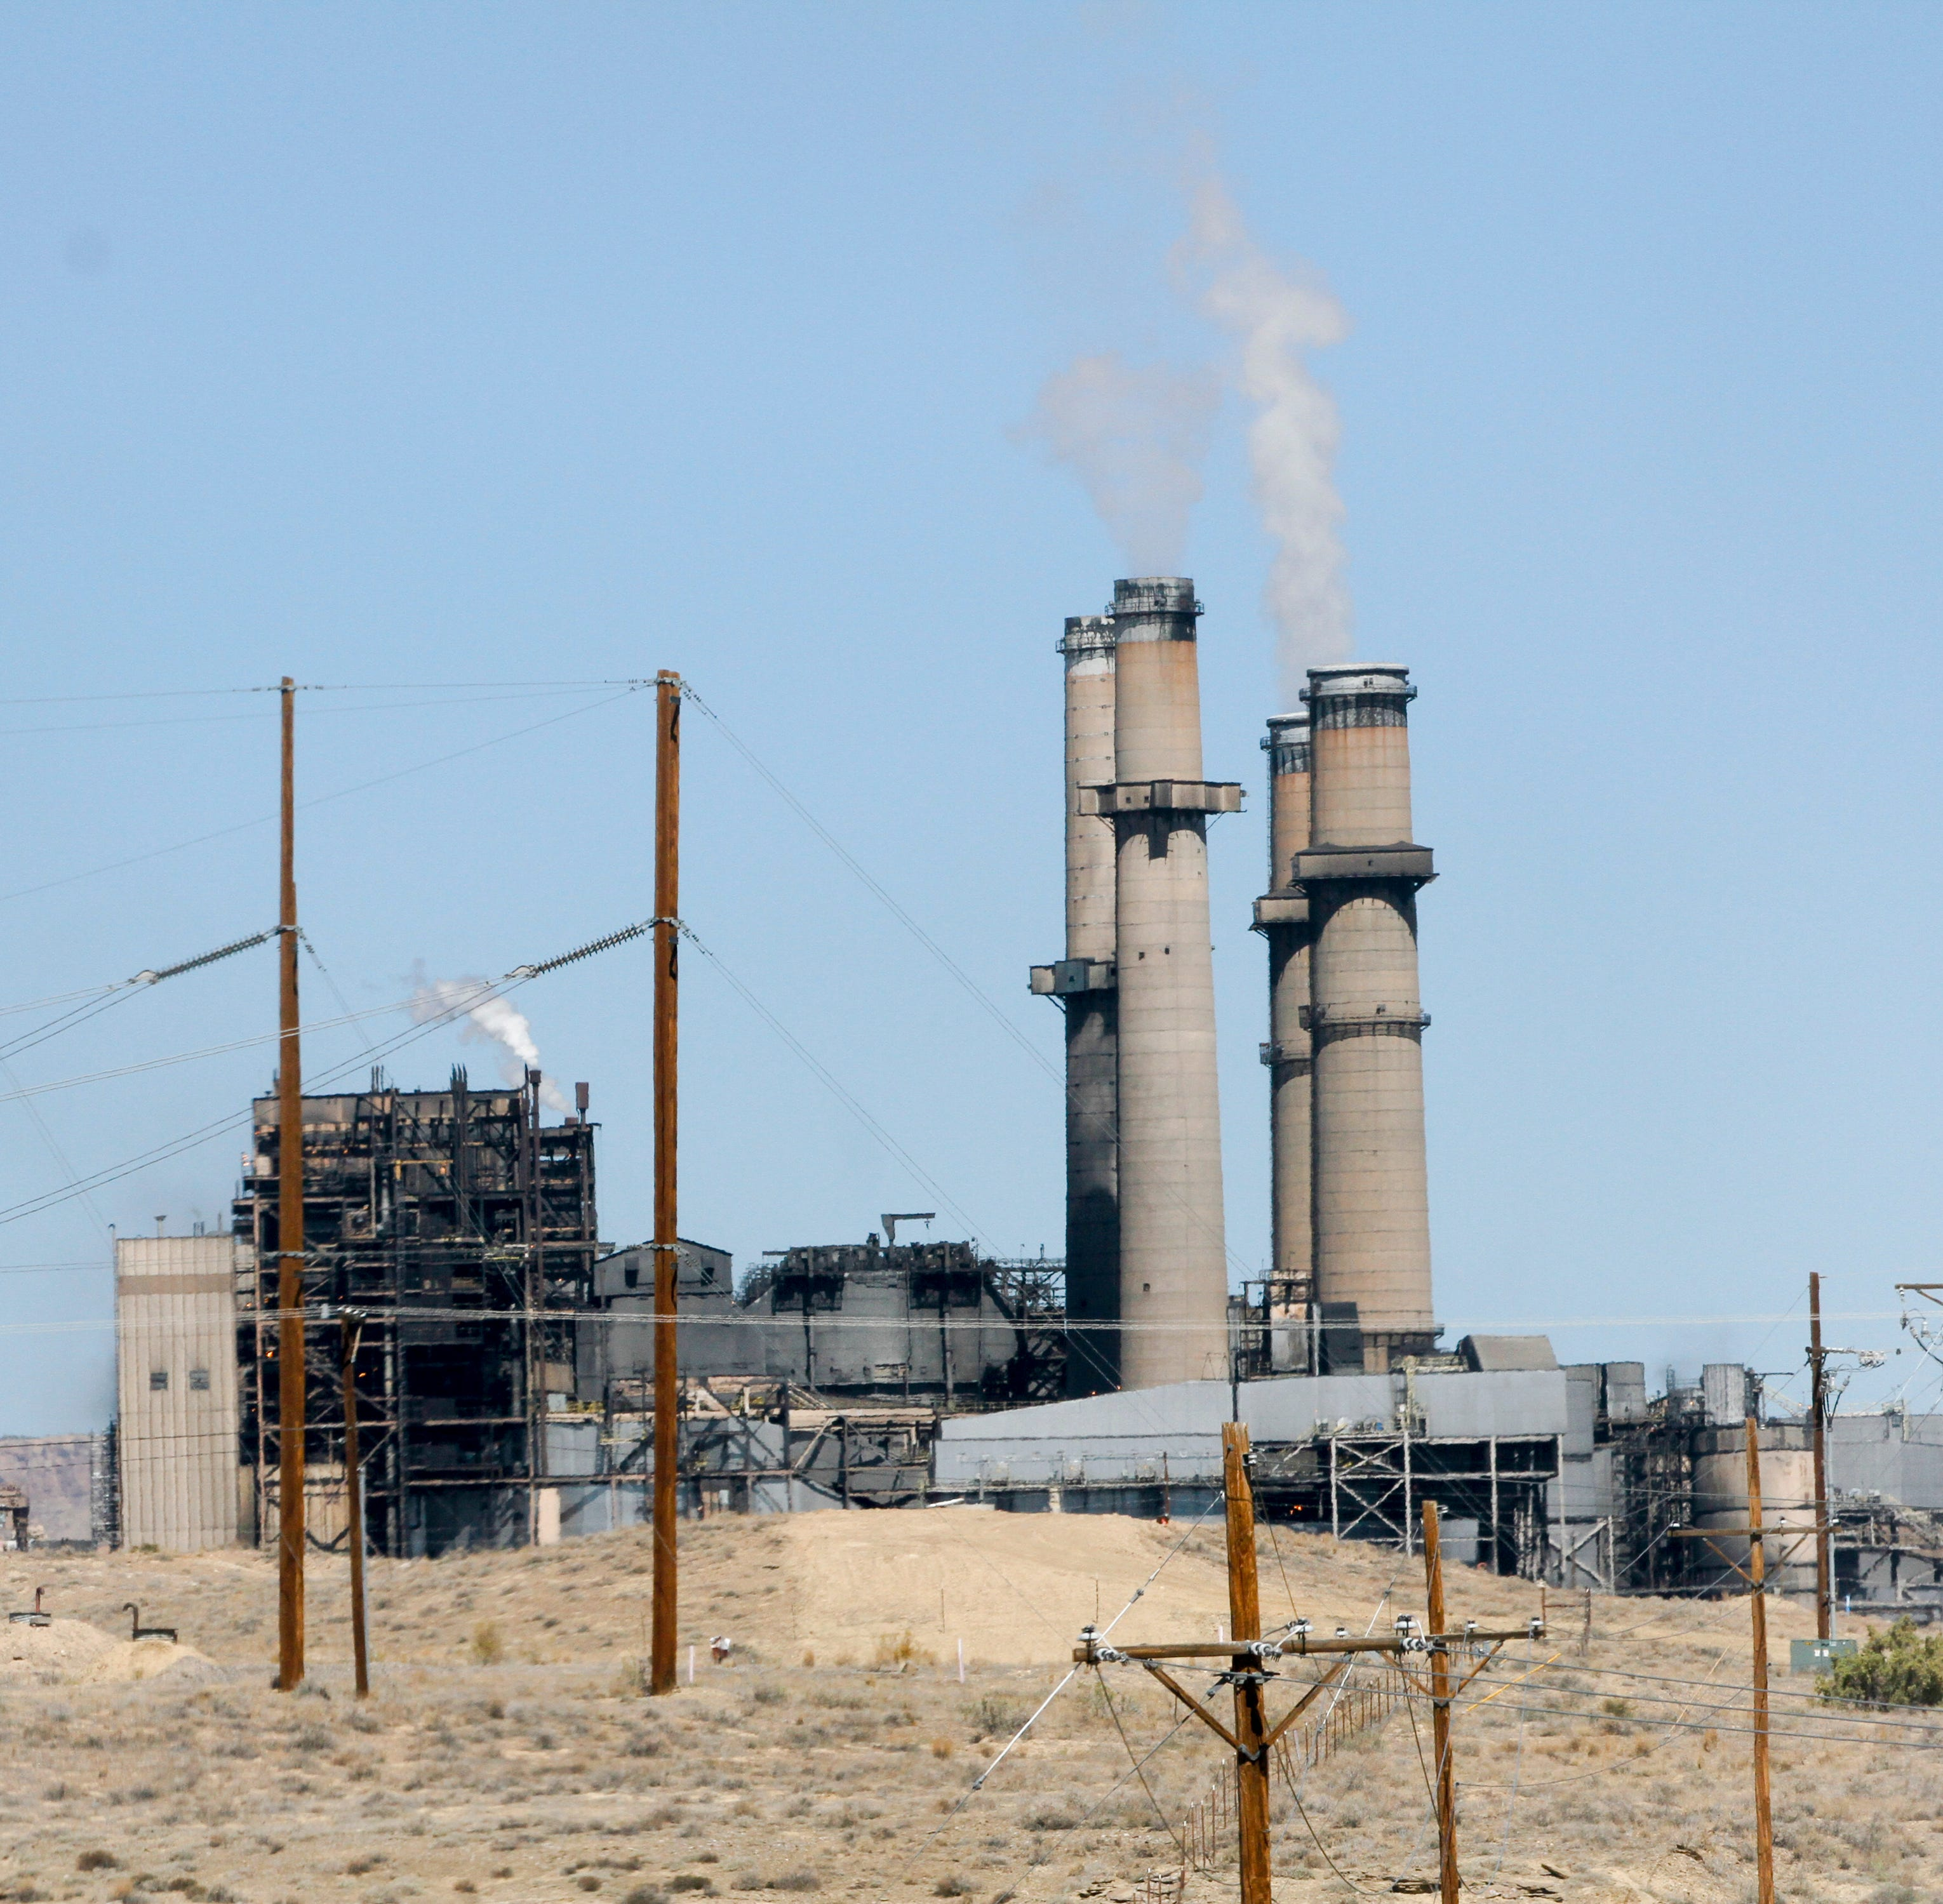 Two bills would provide financing mechanism for closure of San Juan Generating Station